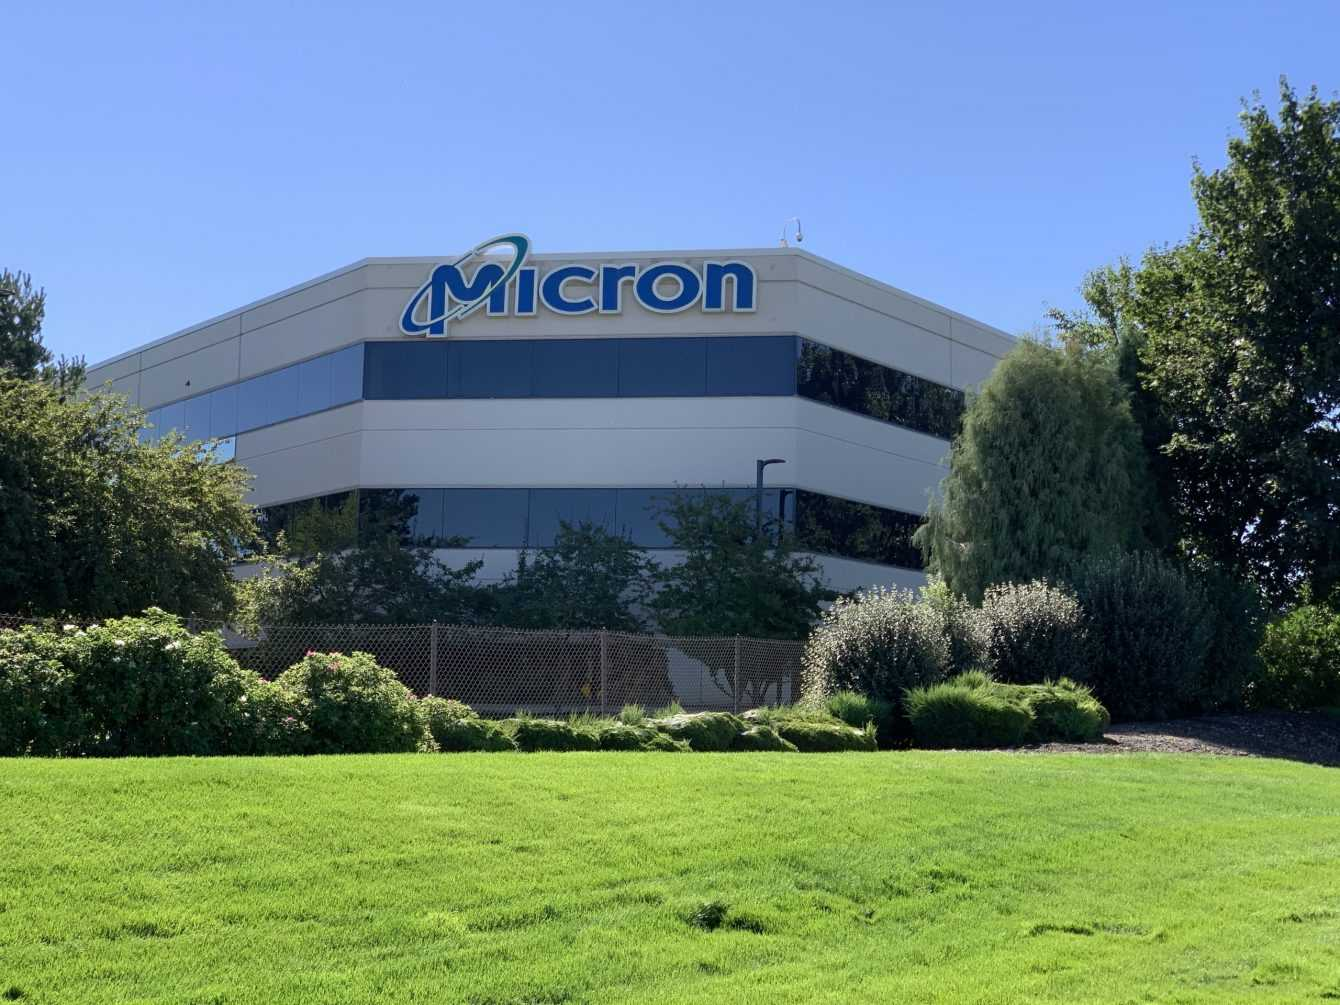 Micron thinks about data centers: new innovation strategies